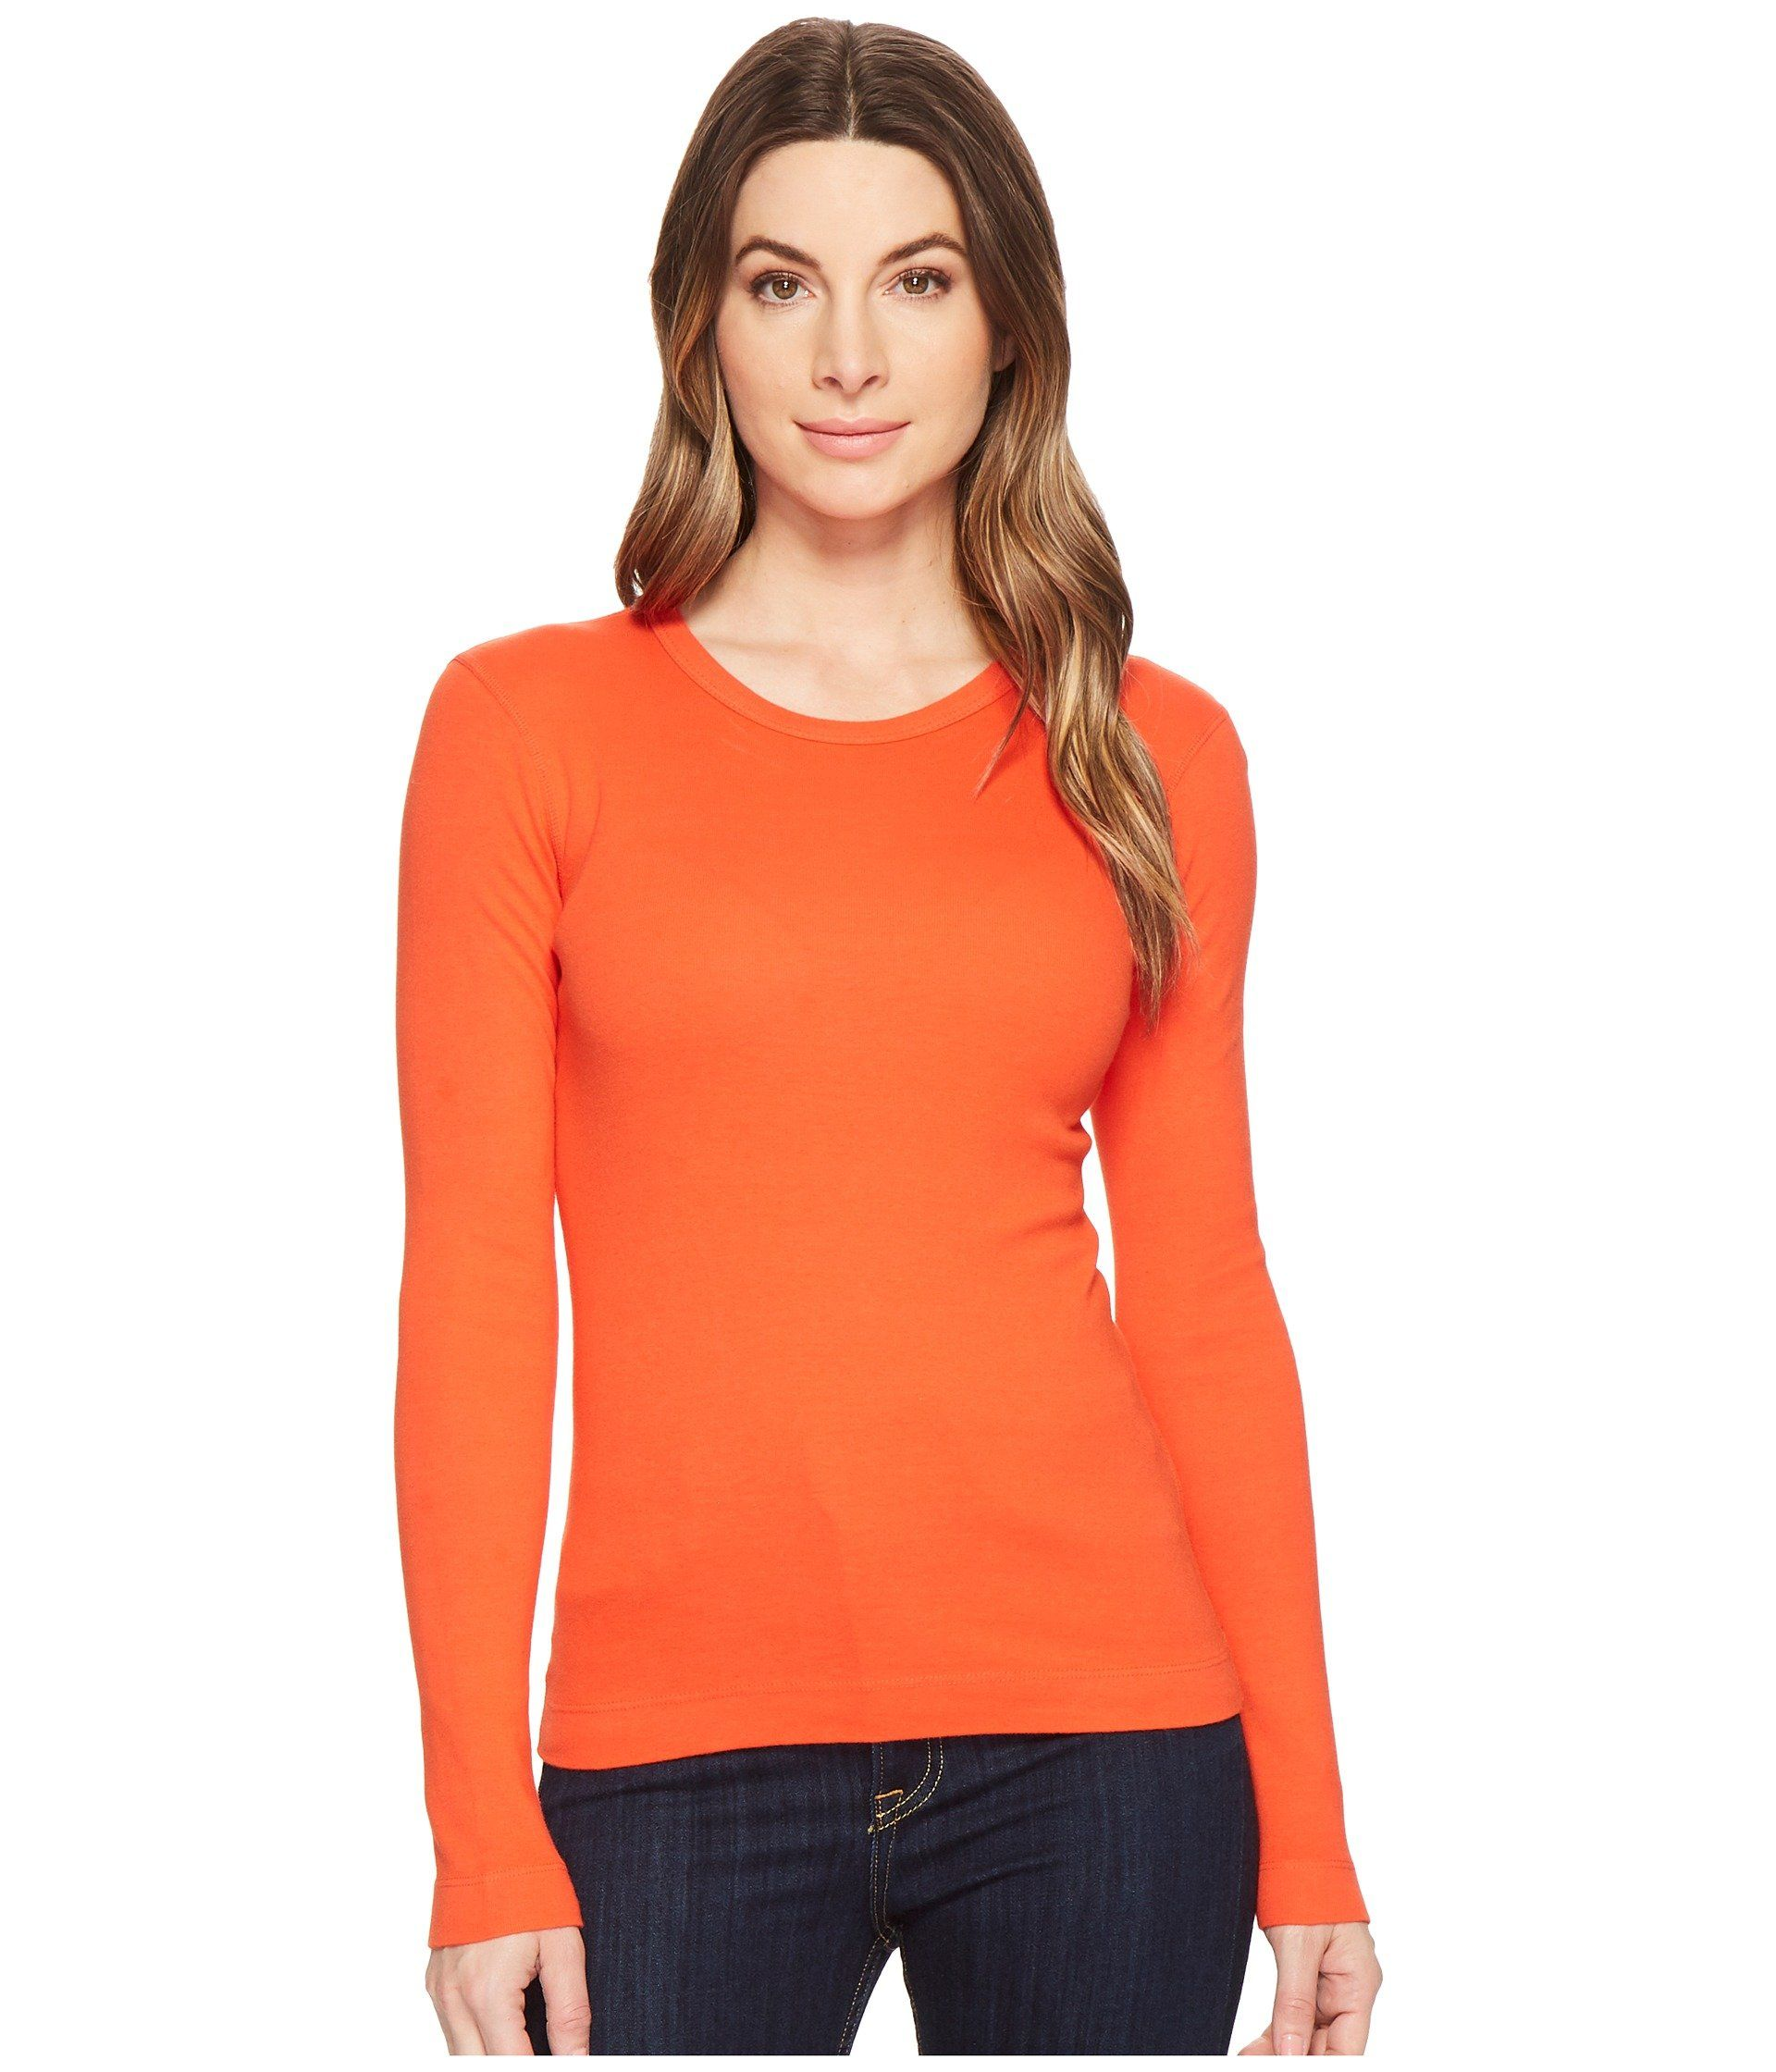 Cora Skinner Zappos 2018 (With images) Long sleeve